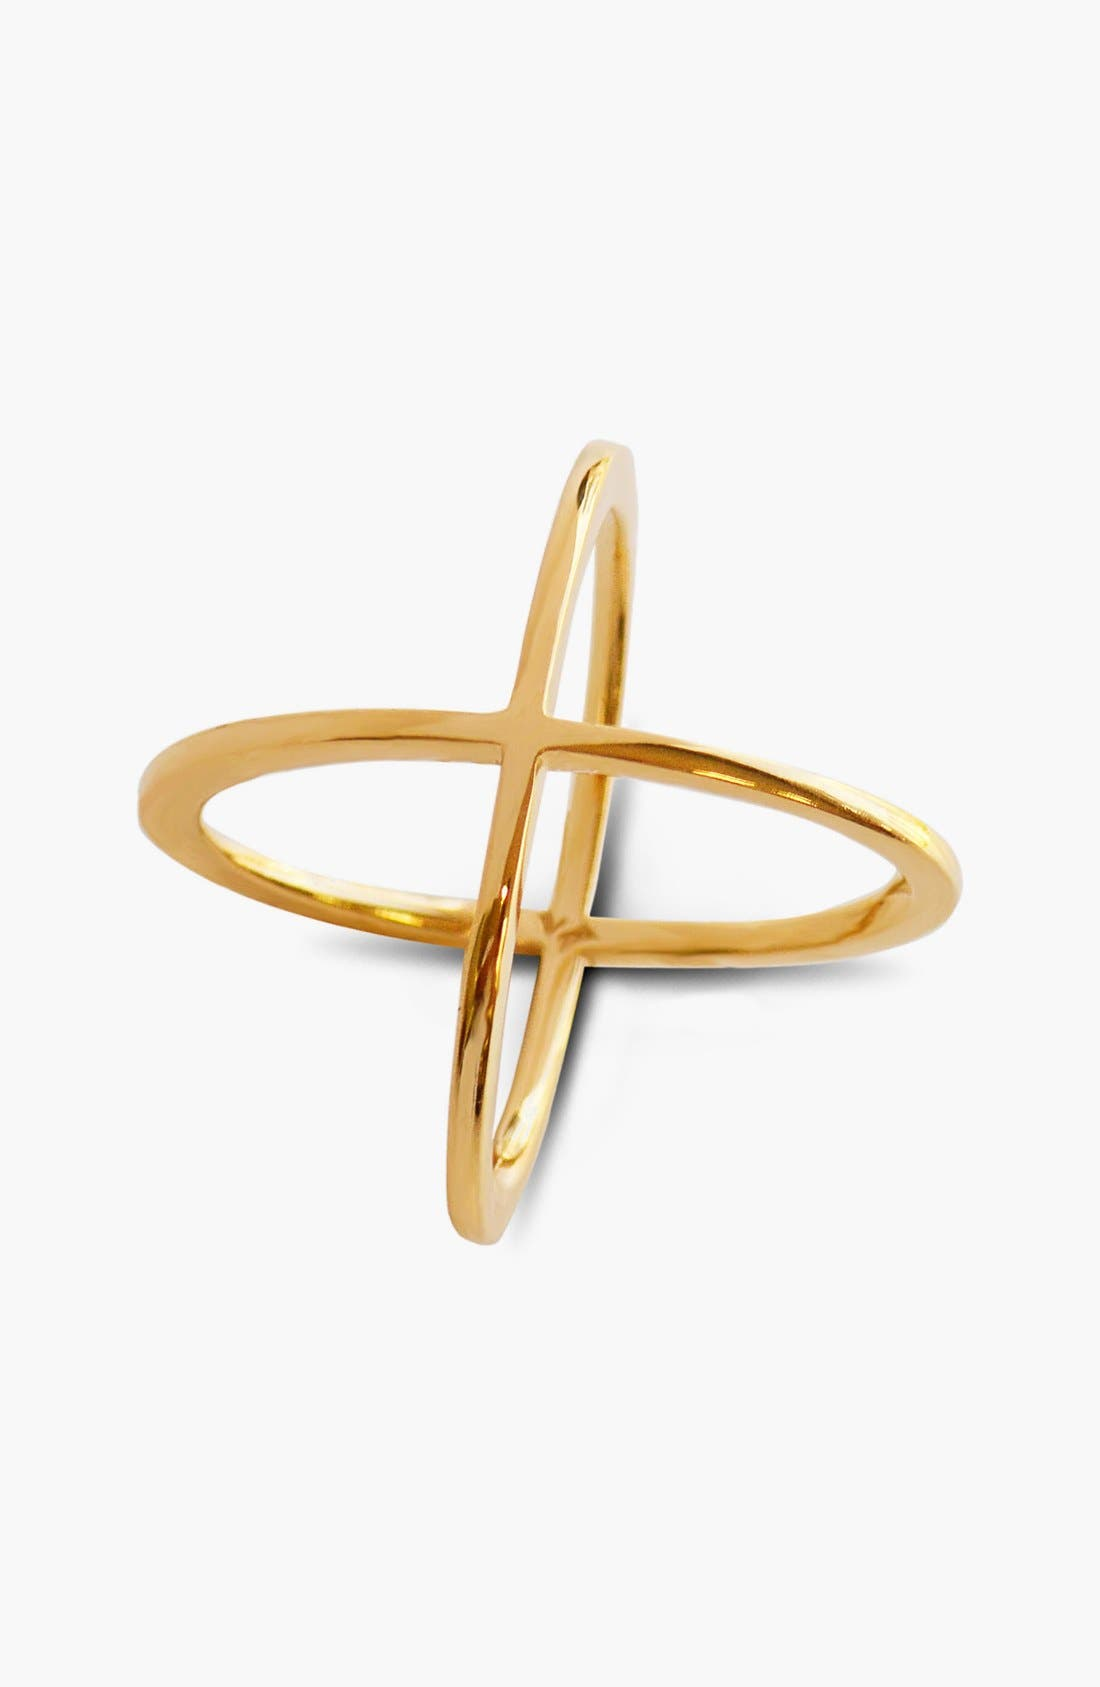 Alternate Image 1 Selected - Bony Levy 'X' Ring (Limited Edition) (Nordstrom Exclusive)